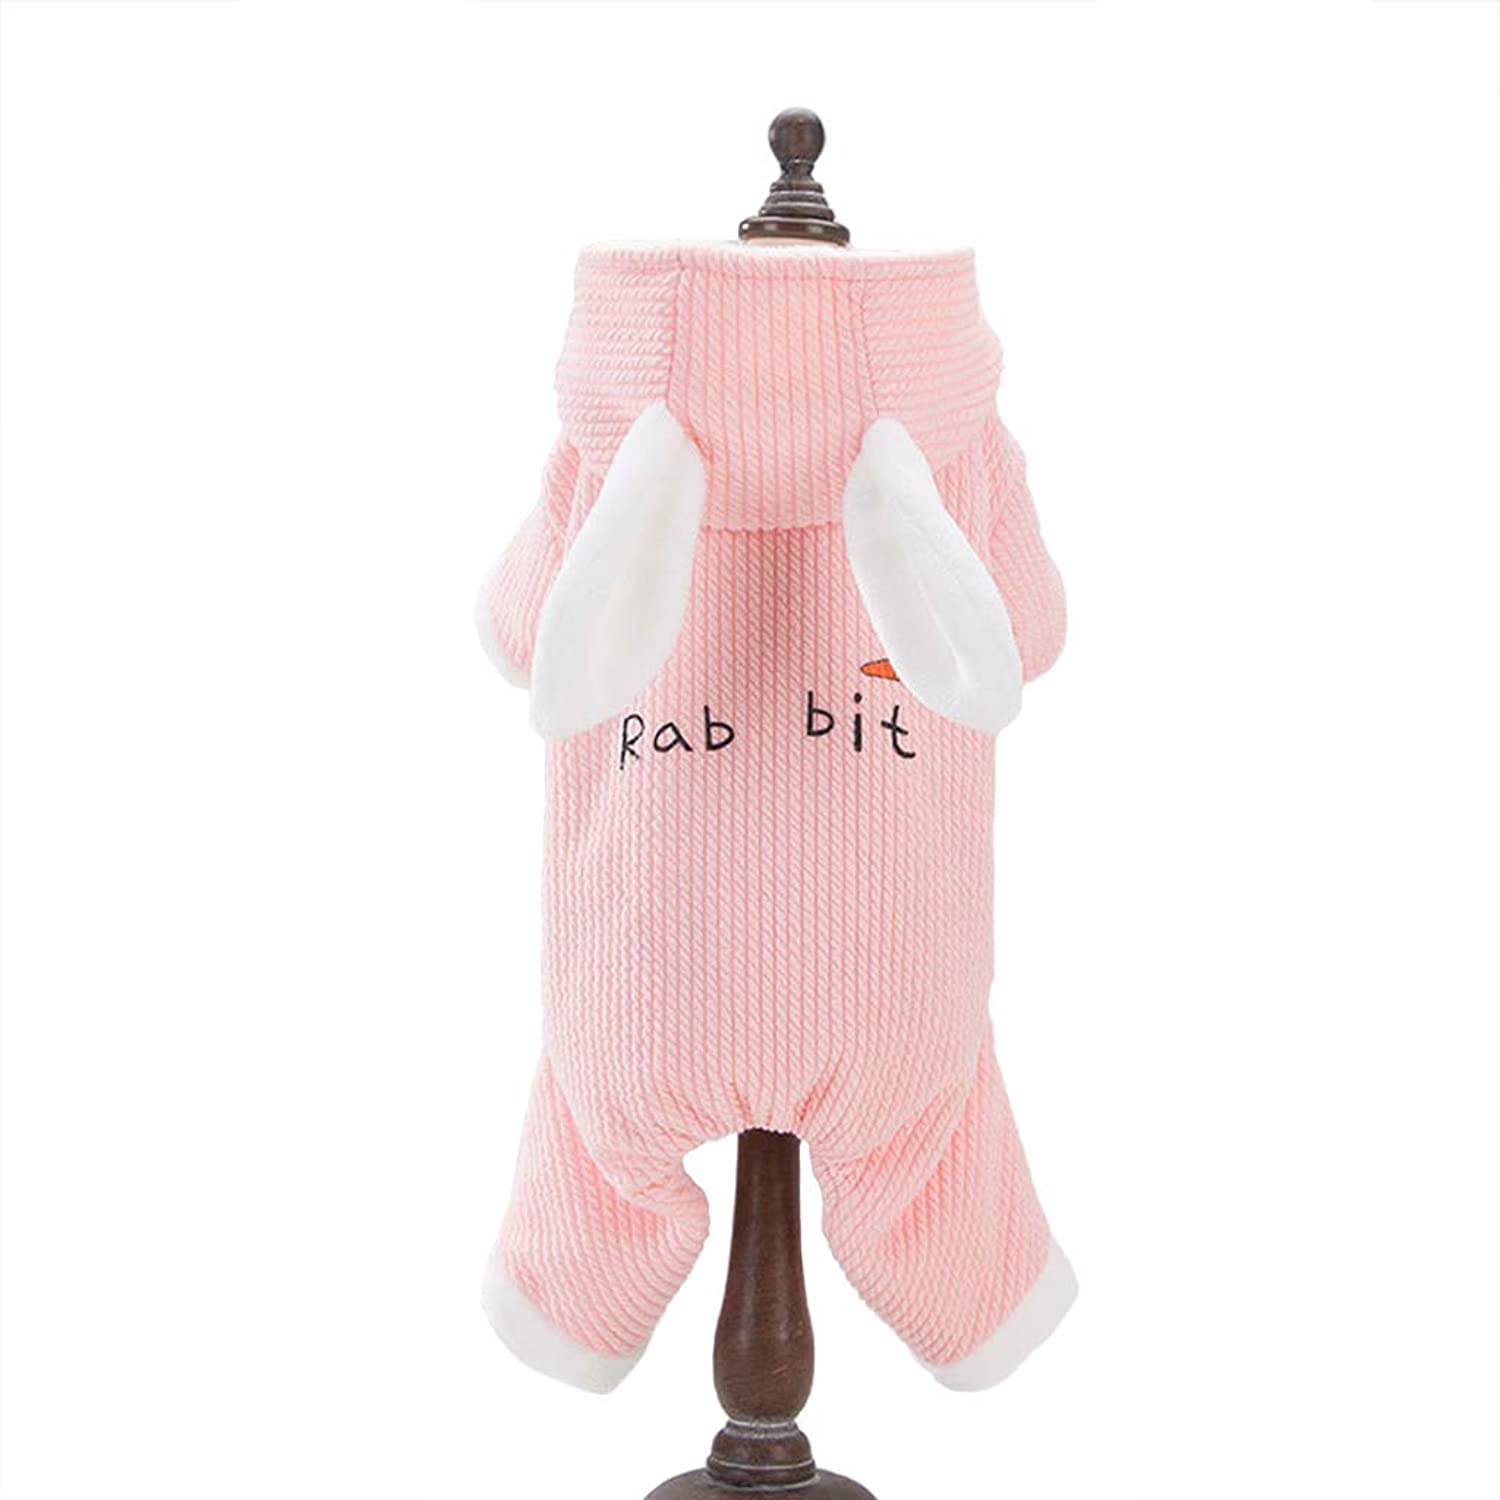 Cat Dog Puppy Hoodies Cute Warm Coats Winter Vest Windproof Cold Weather Cat Jacket Pet Apparel Christmas Small Medium Large Dog Clothes,Pink,XS